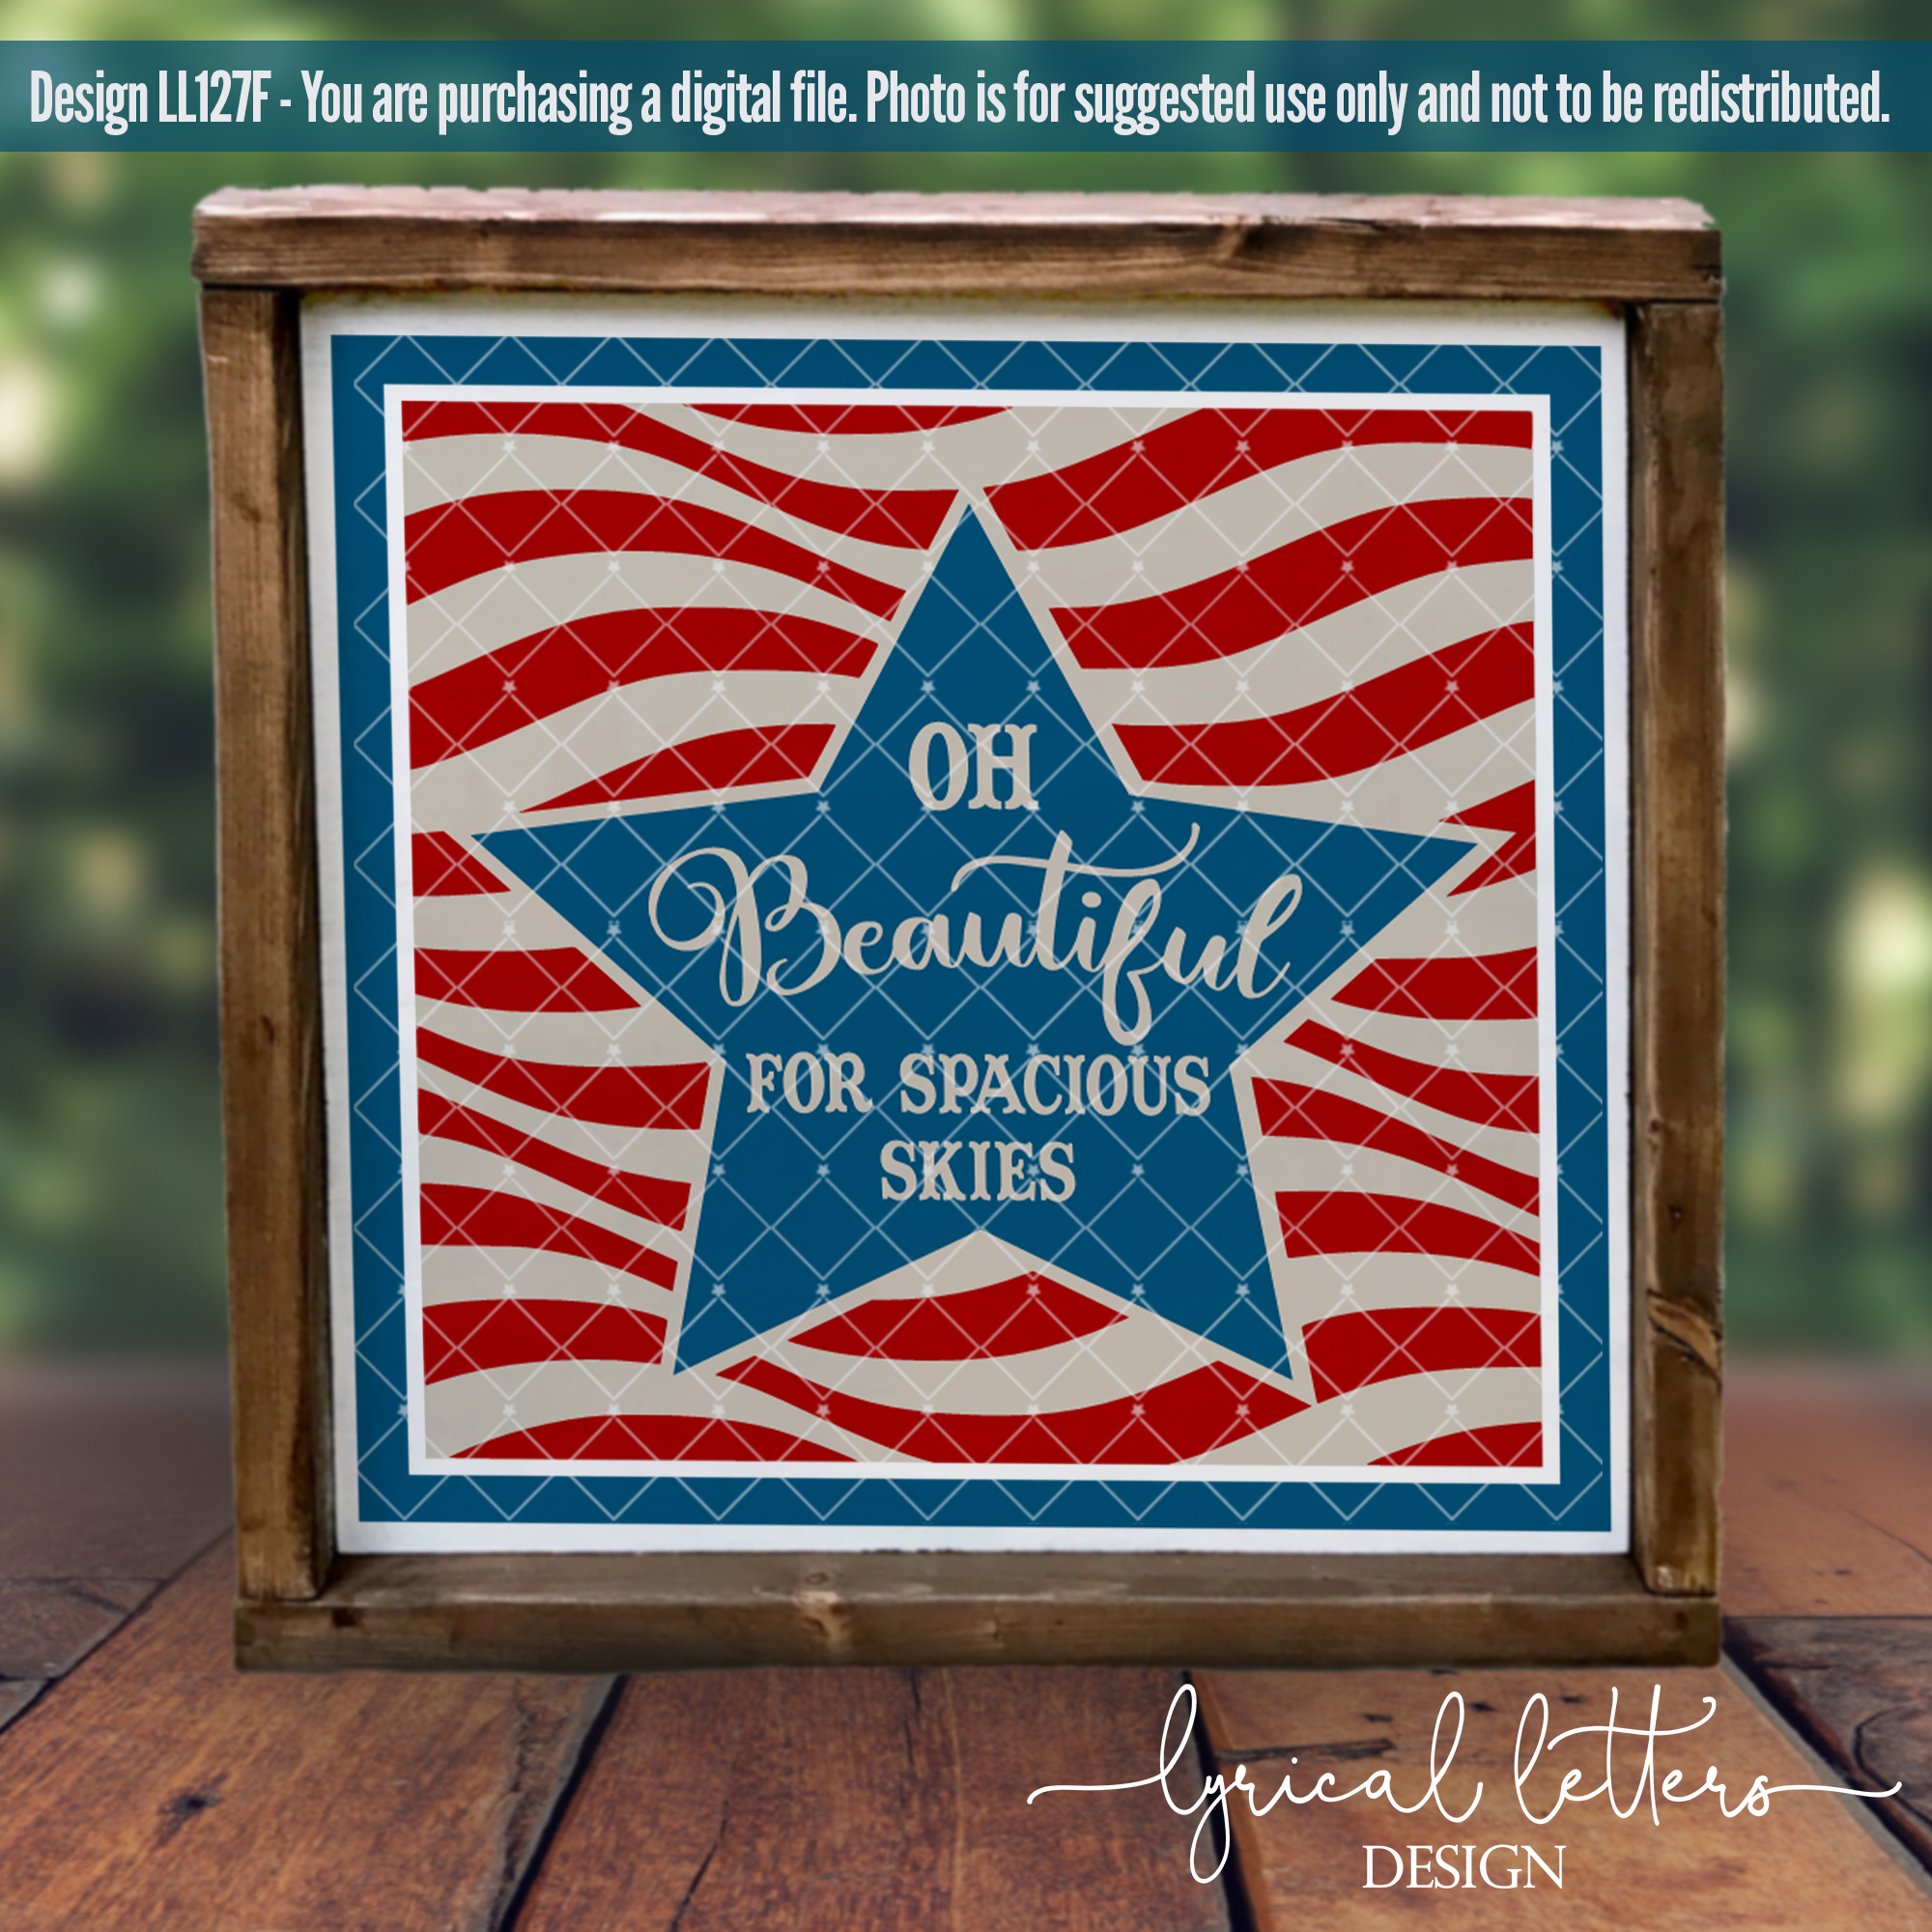 Oh Beautiful For Spacious Skies Patriotic SVG DXF LL127F example image 2